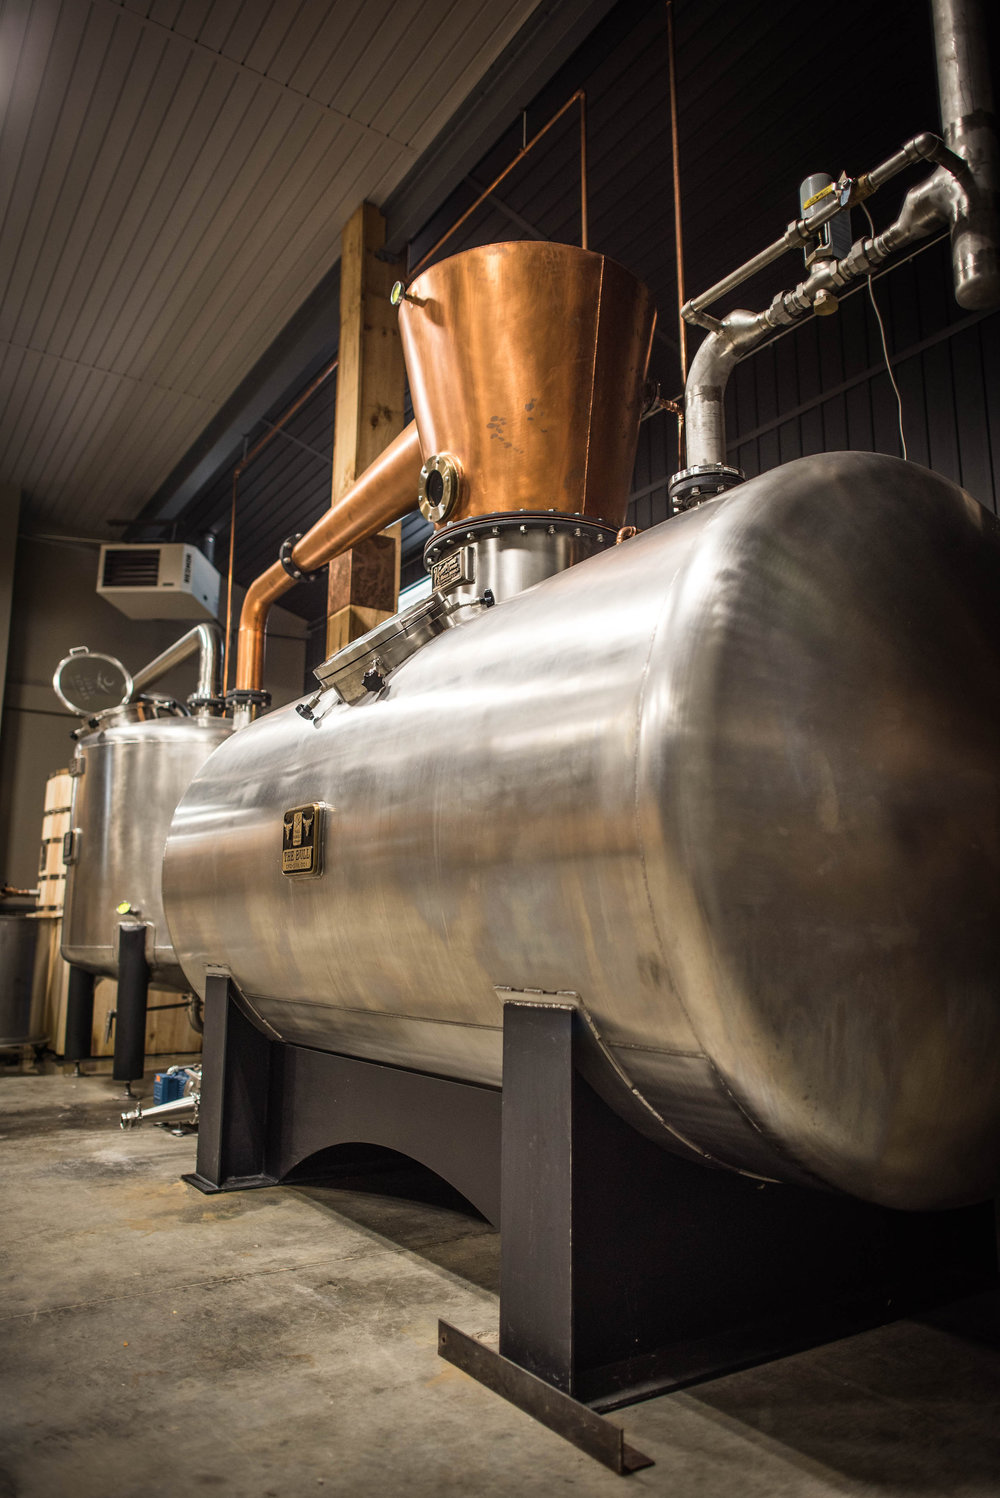 """The Bull"" - Our custom designed 2100 gallon direct steam injection still.  Designed by master distiller, Brian Call -  it is the largest direct steam injection still in North Carolina.  Built in 2015 by  Vendome Copper & Brass Works."